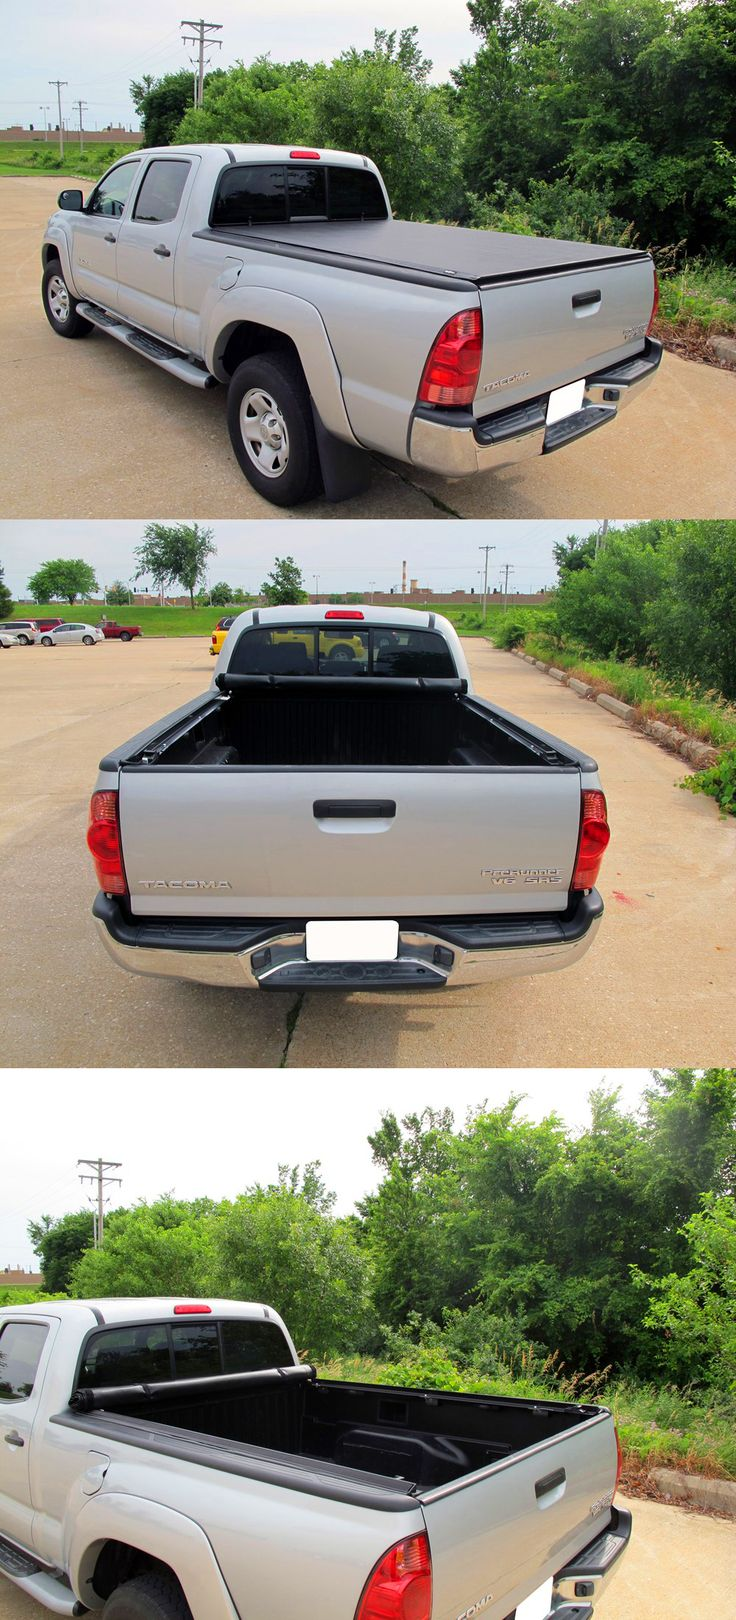 Awesome set of accessories for the Toyota Tacoma! The TruXedo Lo Pro QT Soft Roll-up Tonnaeu Cover can help you increase gas mileage, stores quickly and features automatic tension control. Easy install!